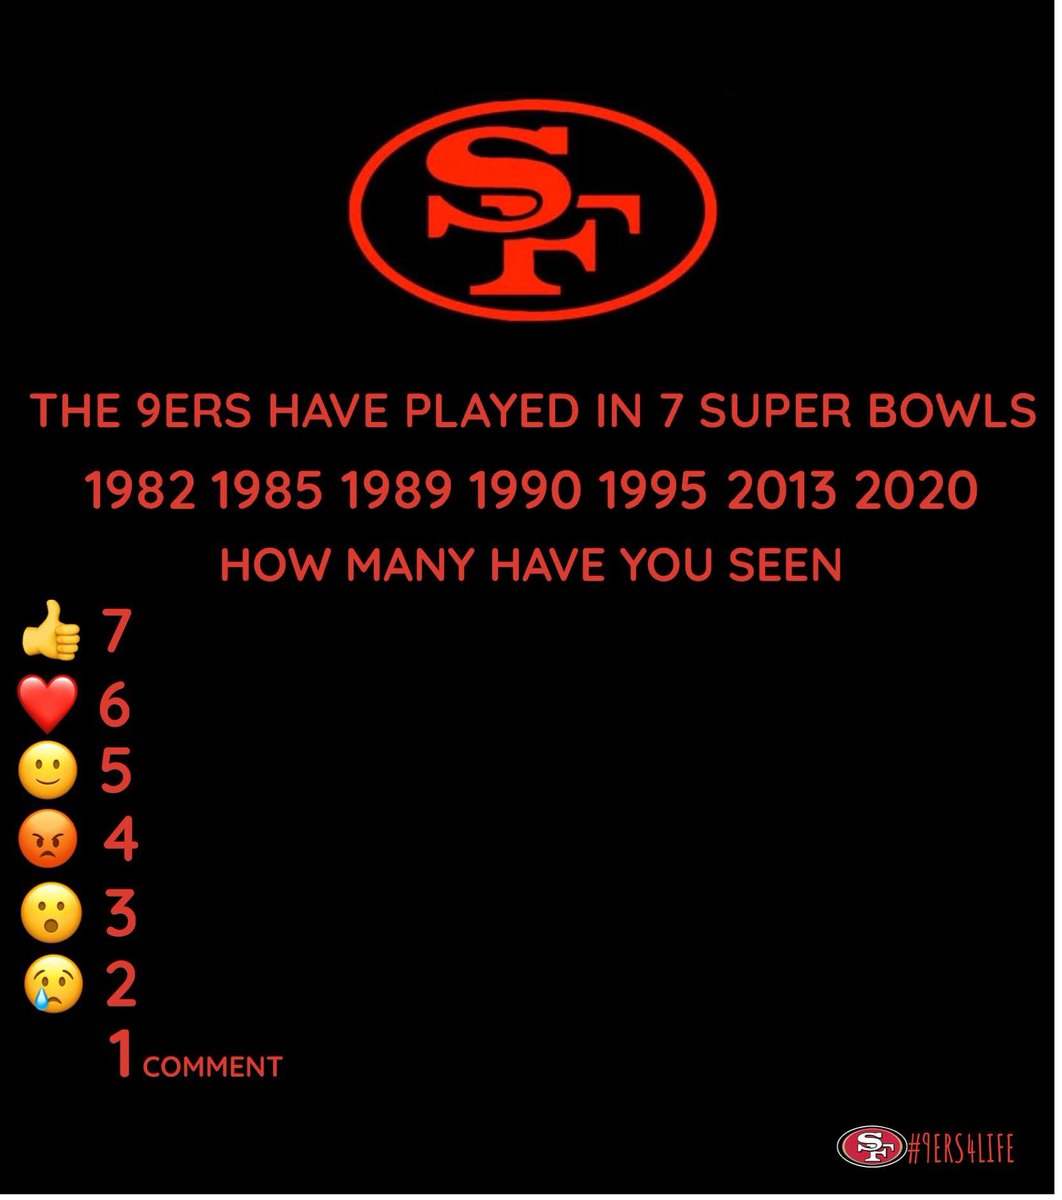 I saw all 7 how many did you see  #nfl #football #superbowl  #sports #49ers #sanfrancisco #nflplayoffs #playoffs  #nfc   #red #gold #5rings #5timesuperbowlchamps  #Niners #Ninerfaithfuls #ninergang #Ninerempire #QuestForSix #GoNiners #Playoffs  #SuperBowlBound pic.twitter.com/rupSMC1tyB